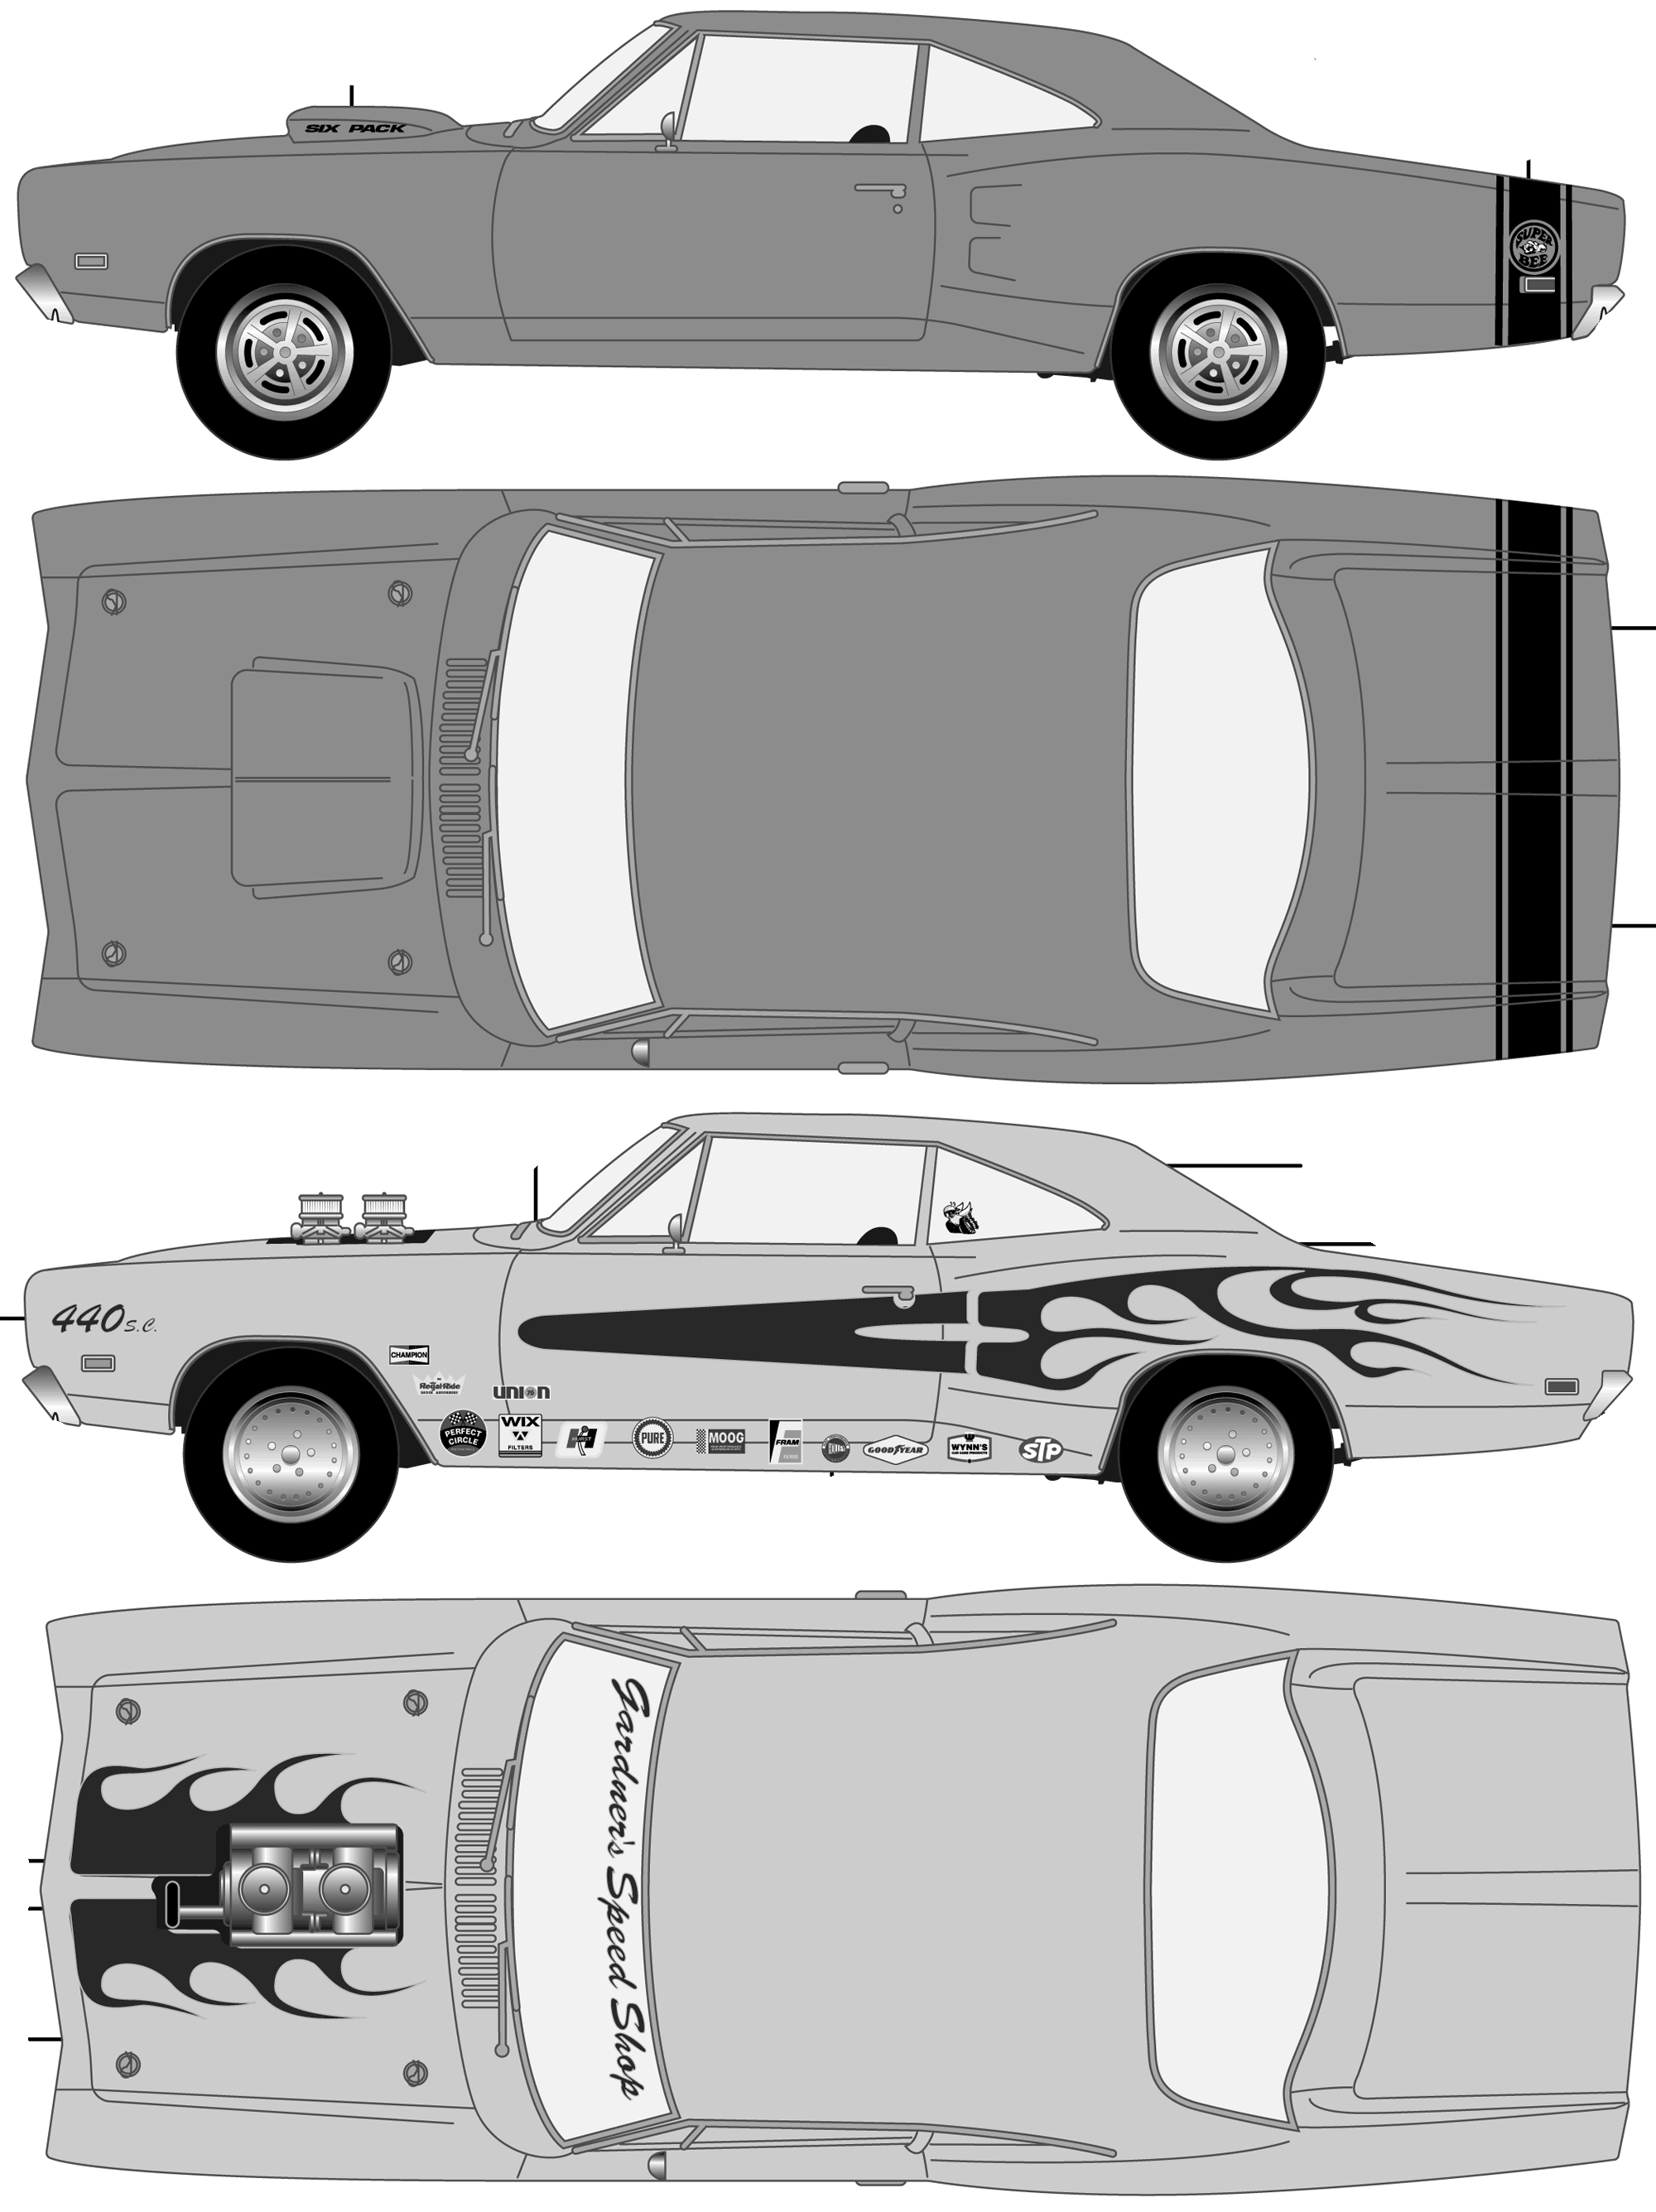 1969 dodge super bee coupe blueprints free outlines dodge super bee blueprints malvernweather Images